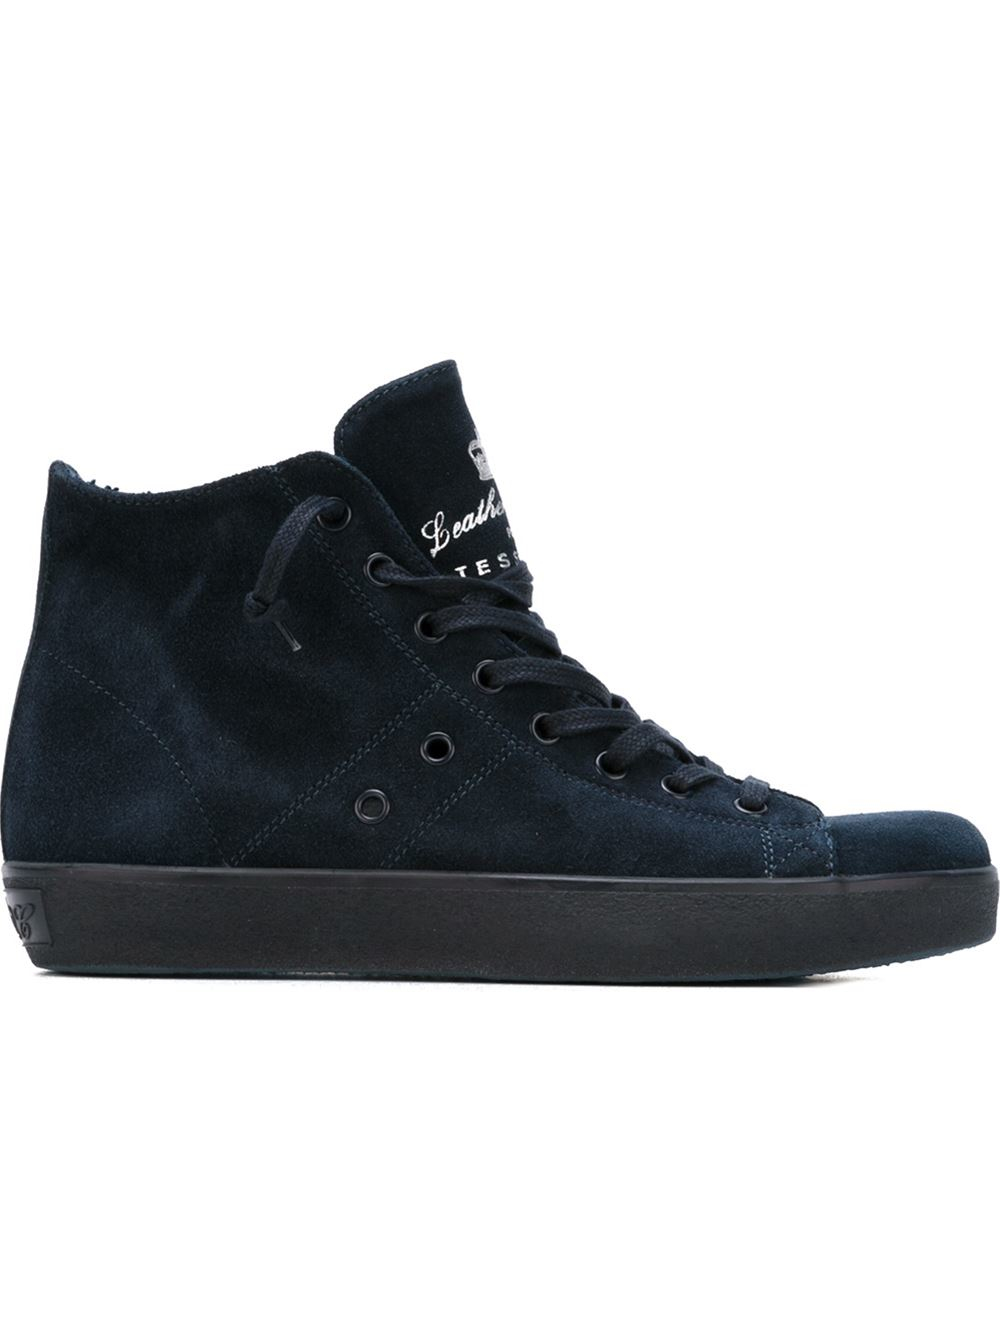 Shop high top shoes for women, girls and boys and be sure to check out all men's shoes for the full selection of footwear options. Customize men's high tops with NIKEiD.